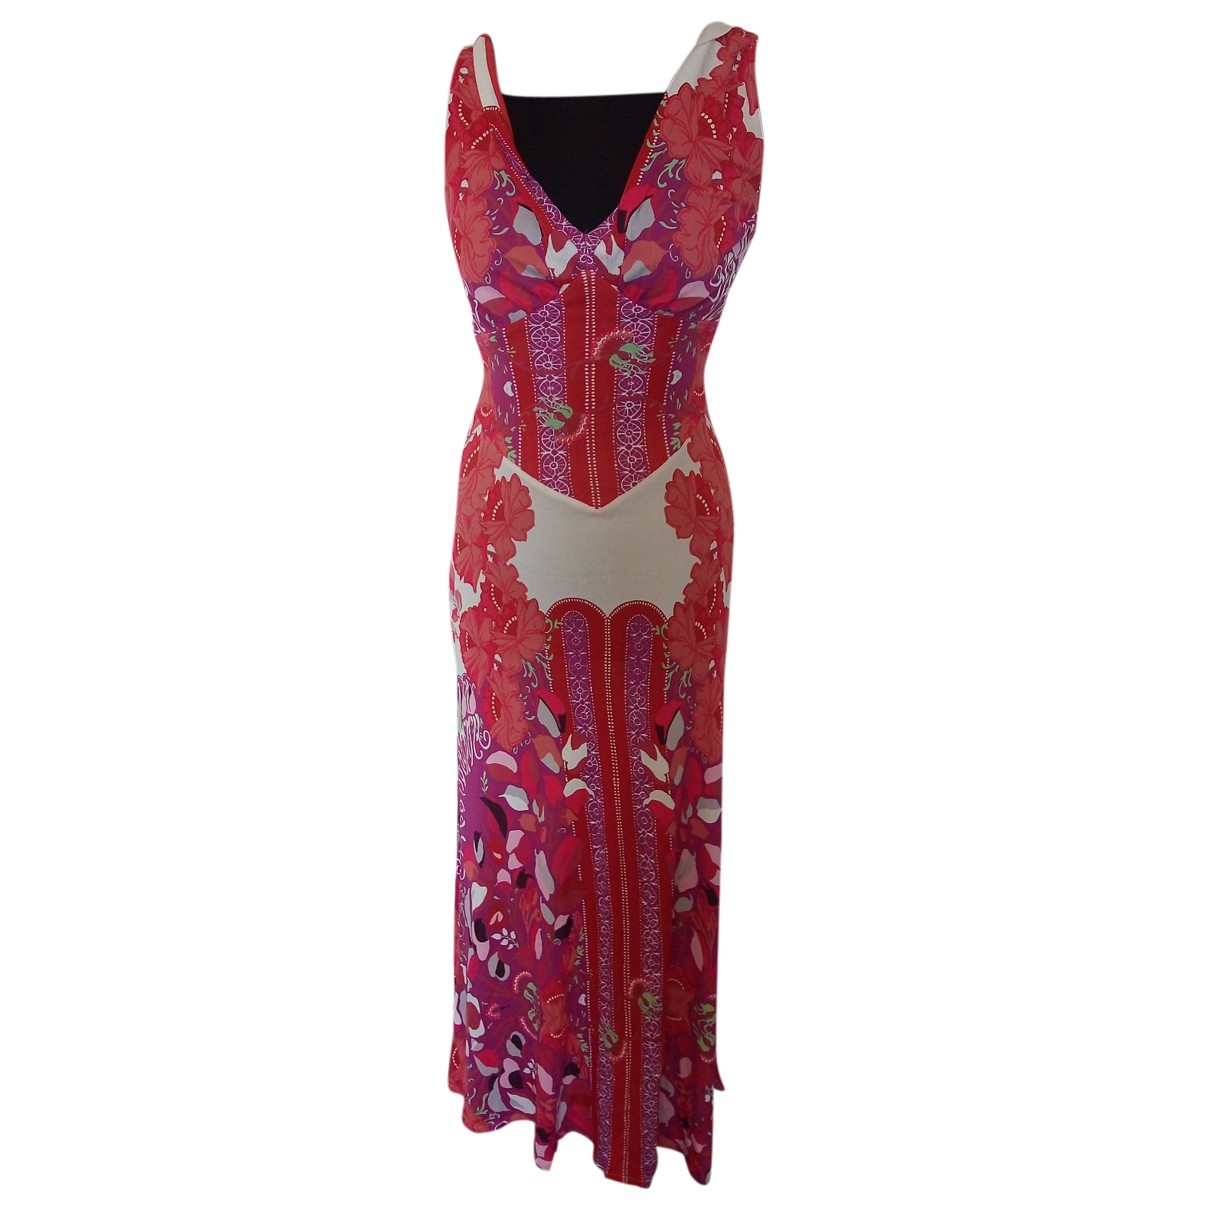 Class Cavalli \N Cotton dress for Women 42 IT